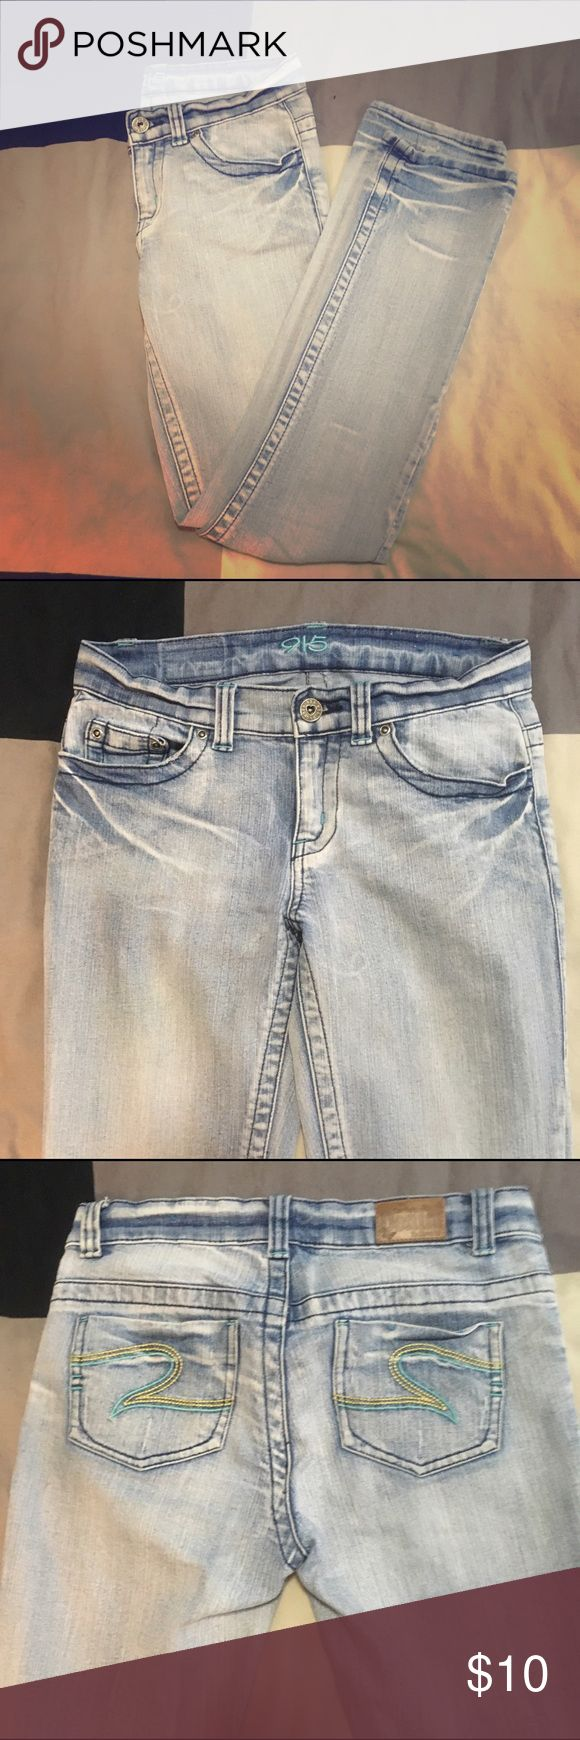 915 New Look light Blue Jeans Labelled as age 12 (152cm) but will fit women's petite size 0. Slight stretch to fabric. Pre loved, good condition jeans, just no longer fit me 😭💙 New Look Bottoms Jeans